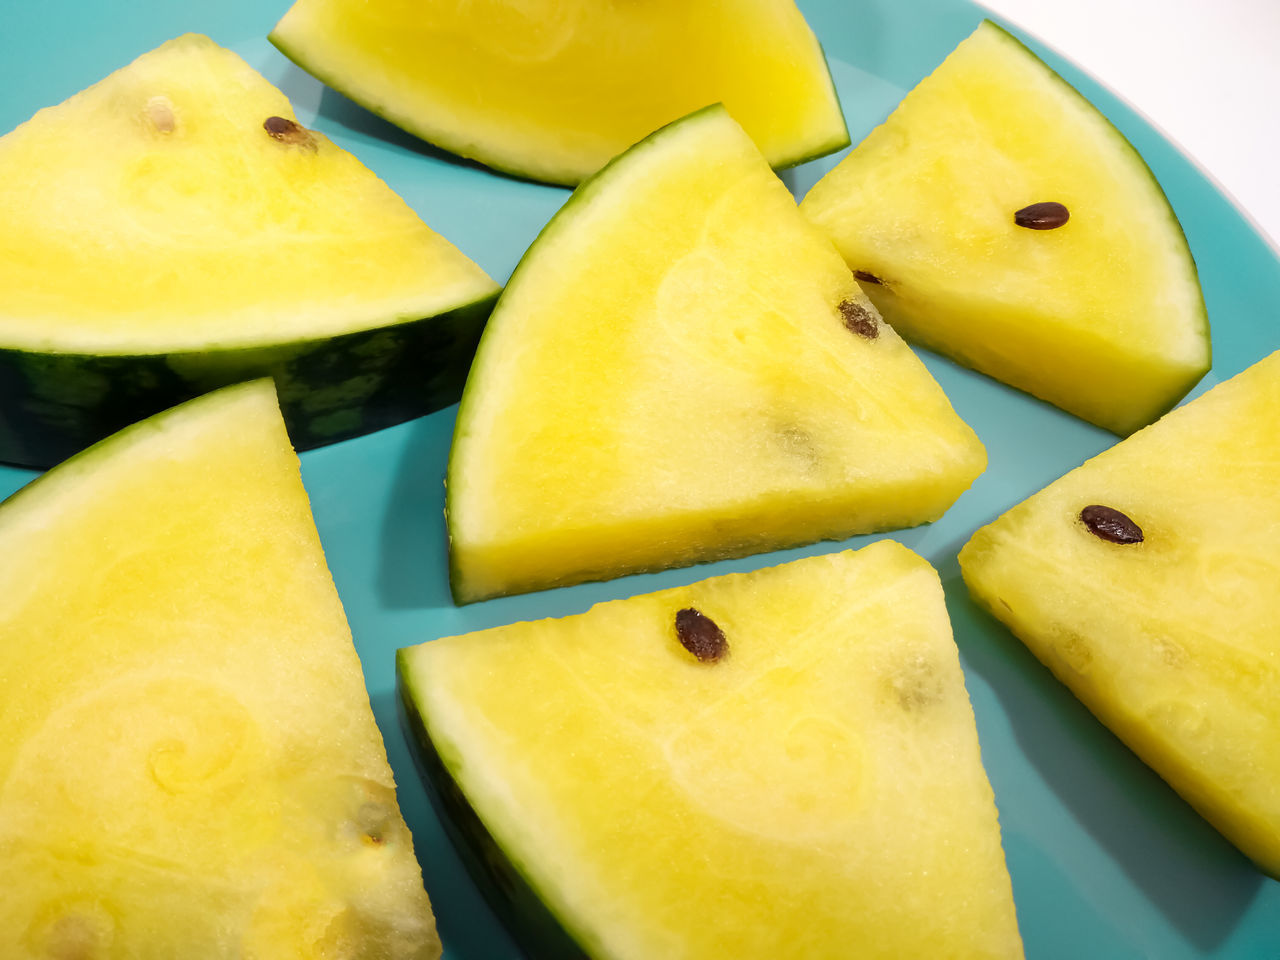 Refreshing Triangular Slices of a Juicy Yellow Watermelon on a Blue Dish Close-up Day Diet Food Food And Drink Freshness Fruit Fruitarian Healthy Healthy Eating Healthy Fruits Healthy Lifestyle Indoors  Mango No People Organic Food Organic Watermelon SLICE Summer Food Triangle Triangle Shape Triangular Slices Tropical Fruit Tropics Yellow